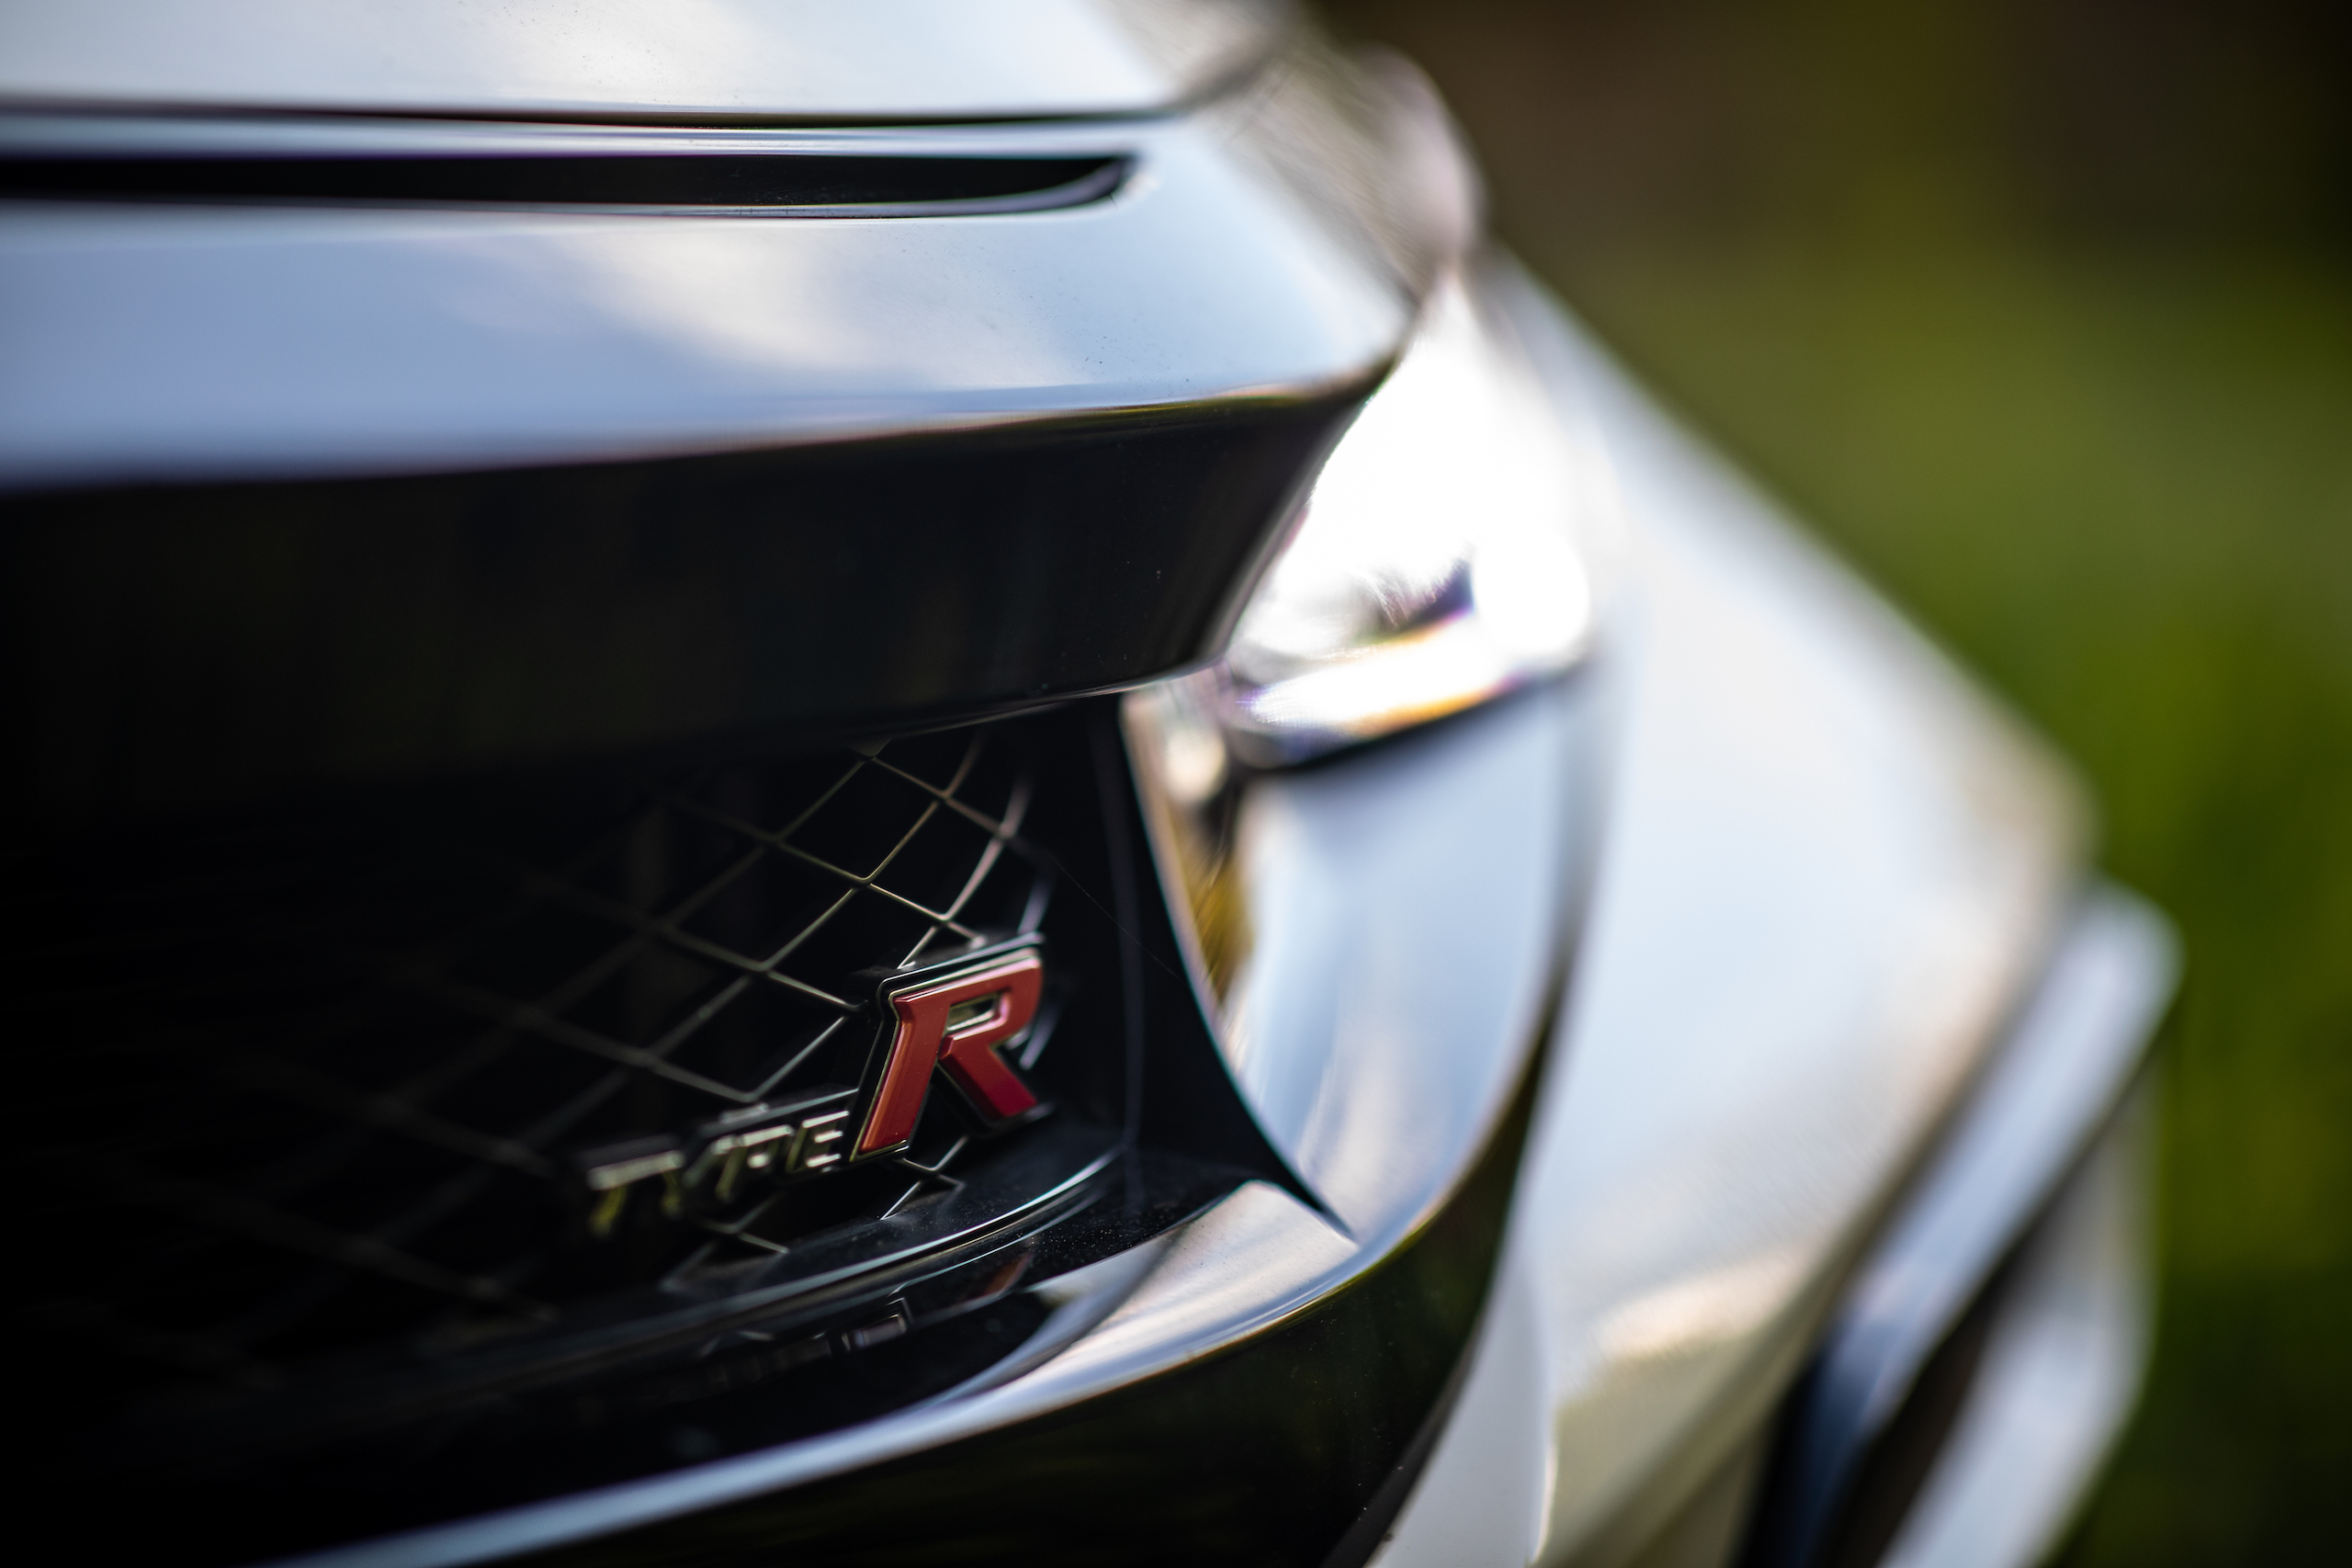 2020 Honda Civic Type R front grille detail